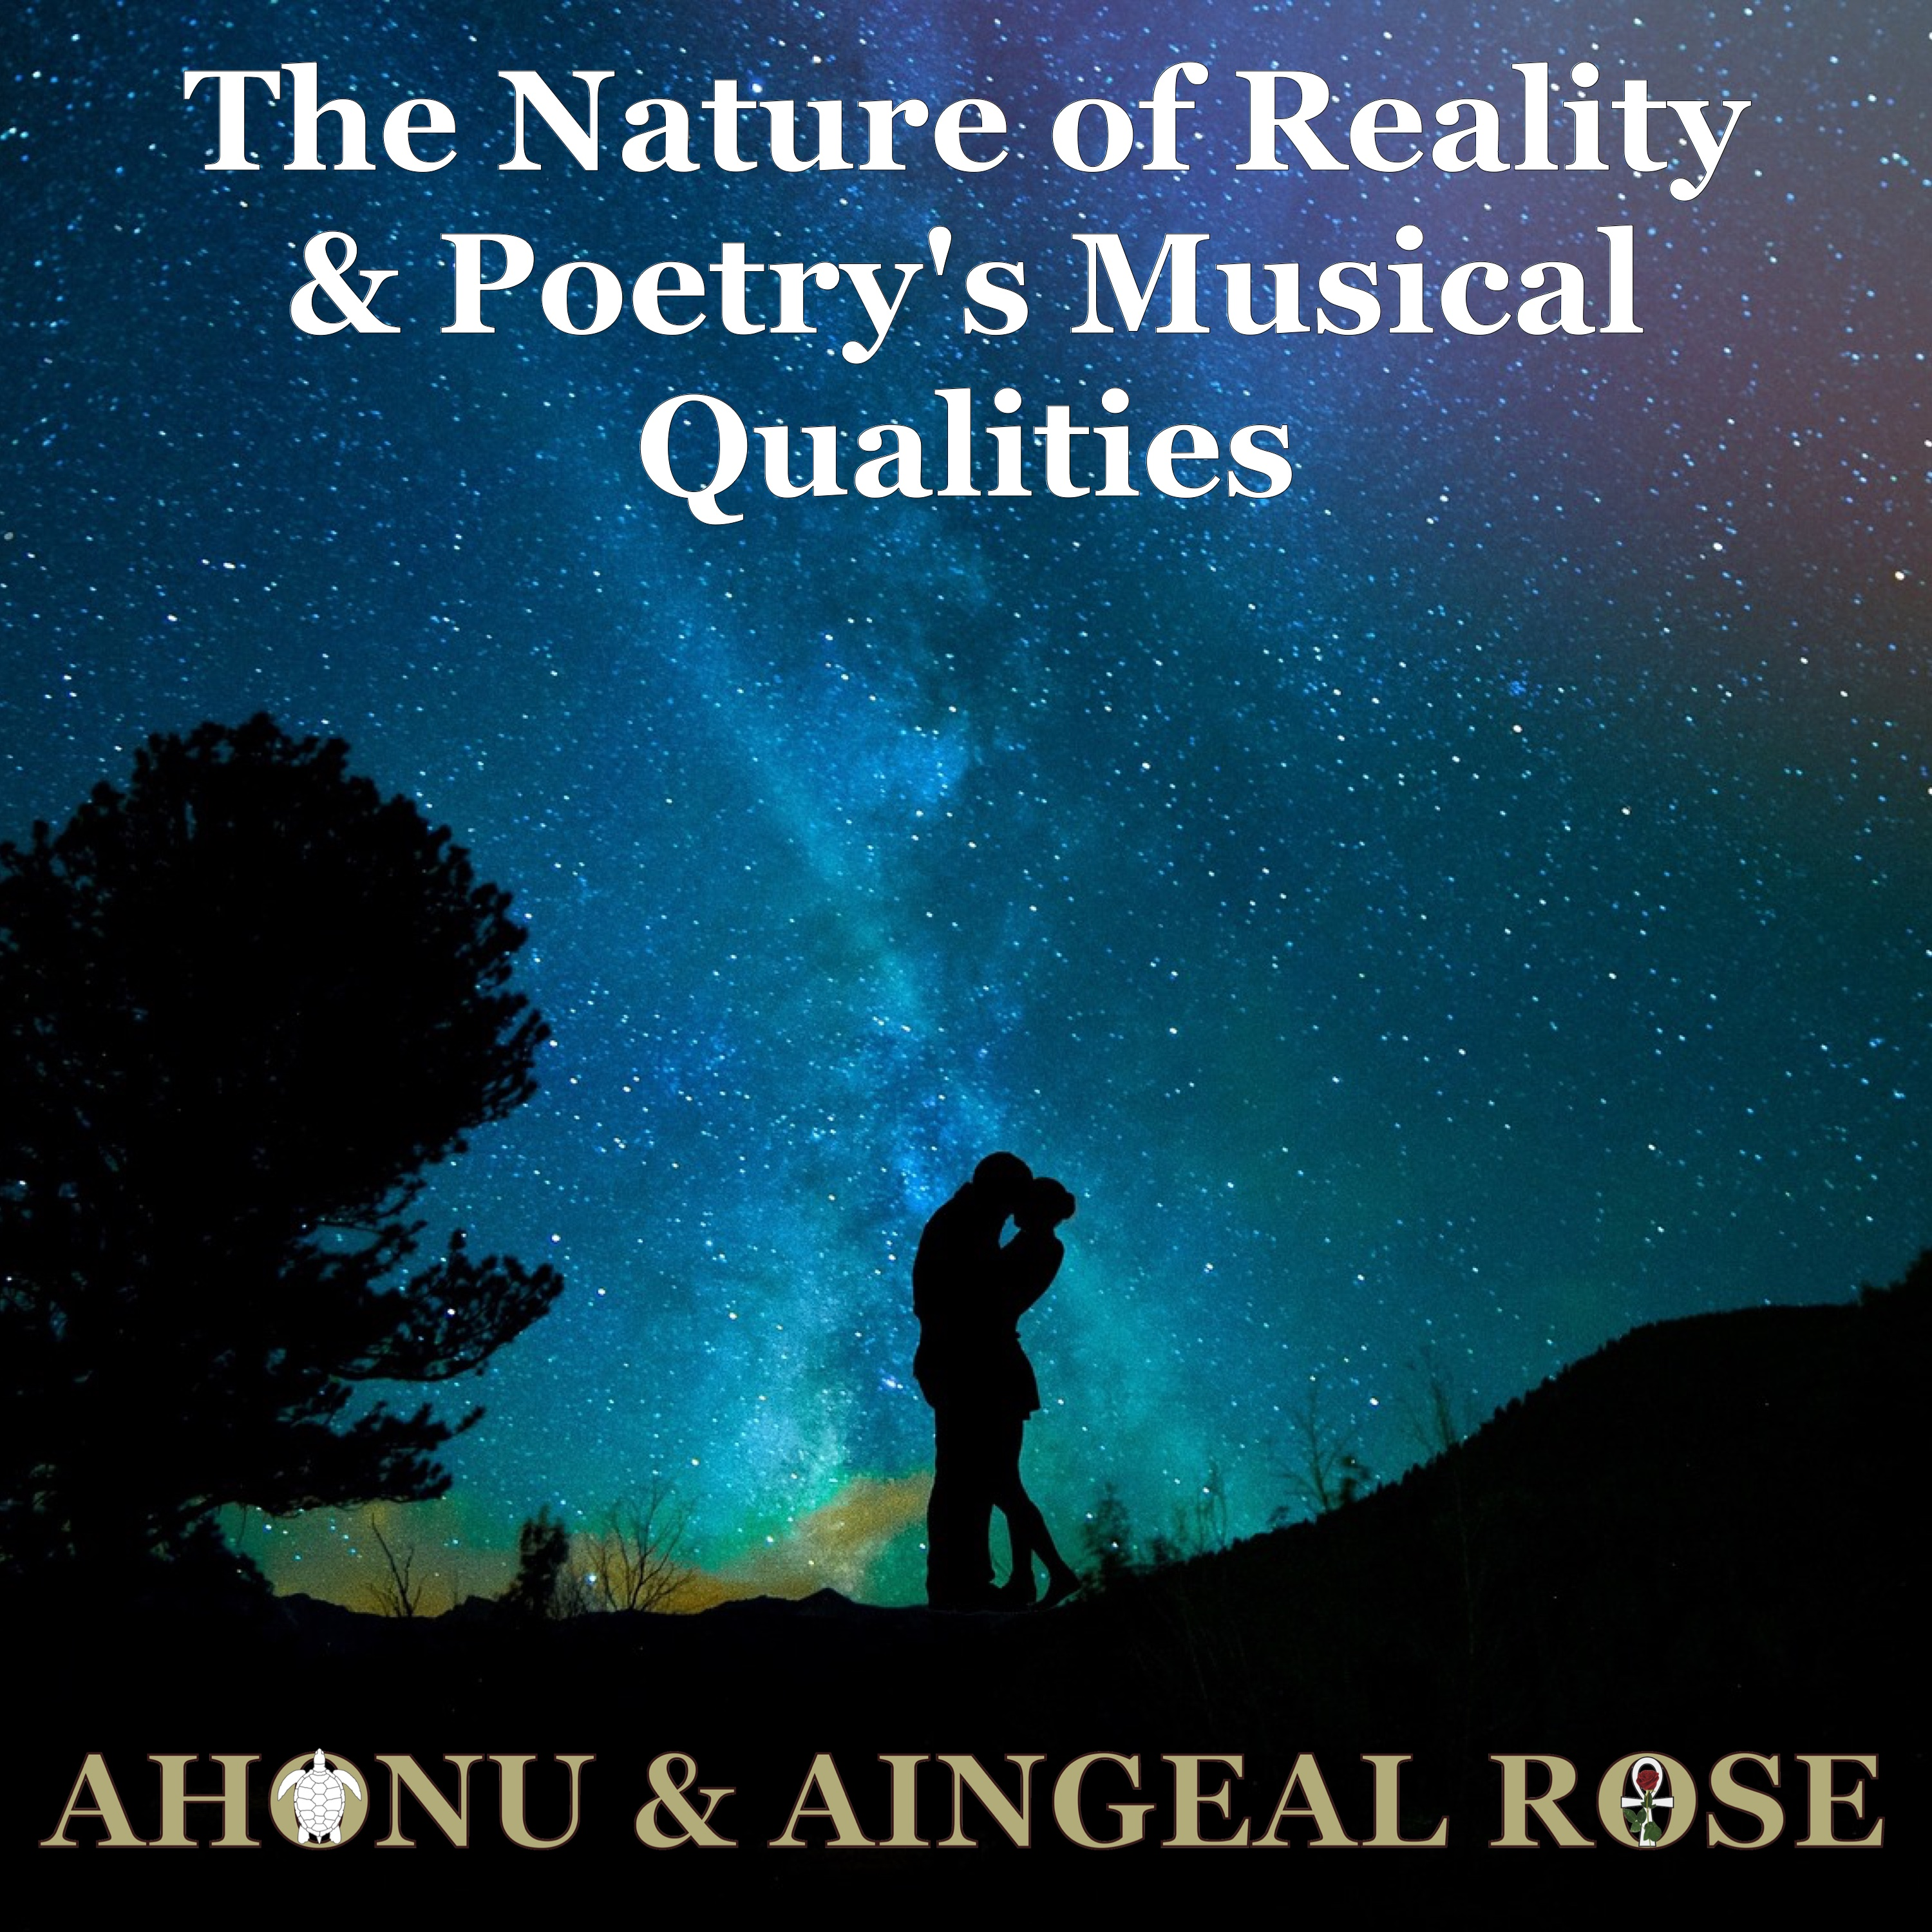 Aingeal Rose & Ahonu read stories about The Nature of Reality and Musical Qualities